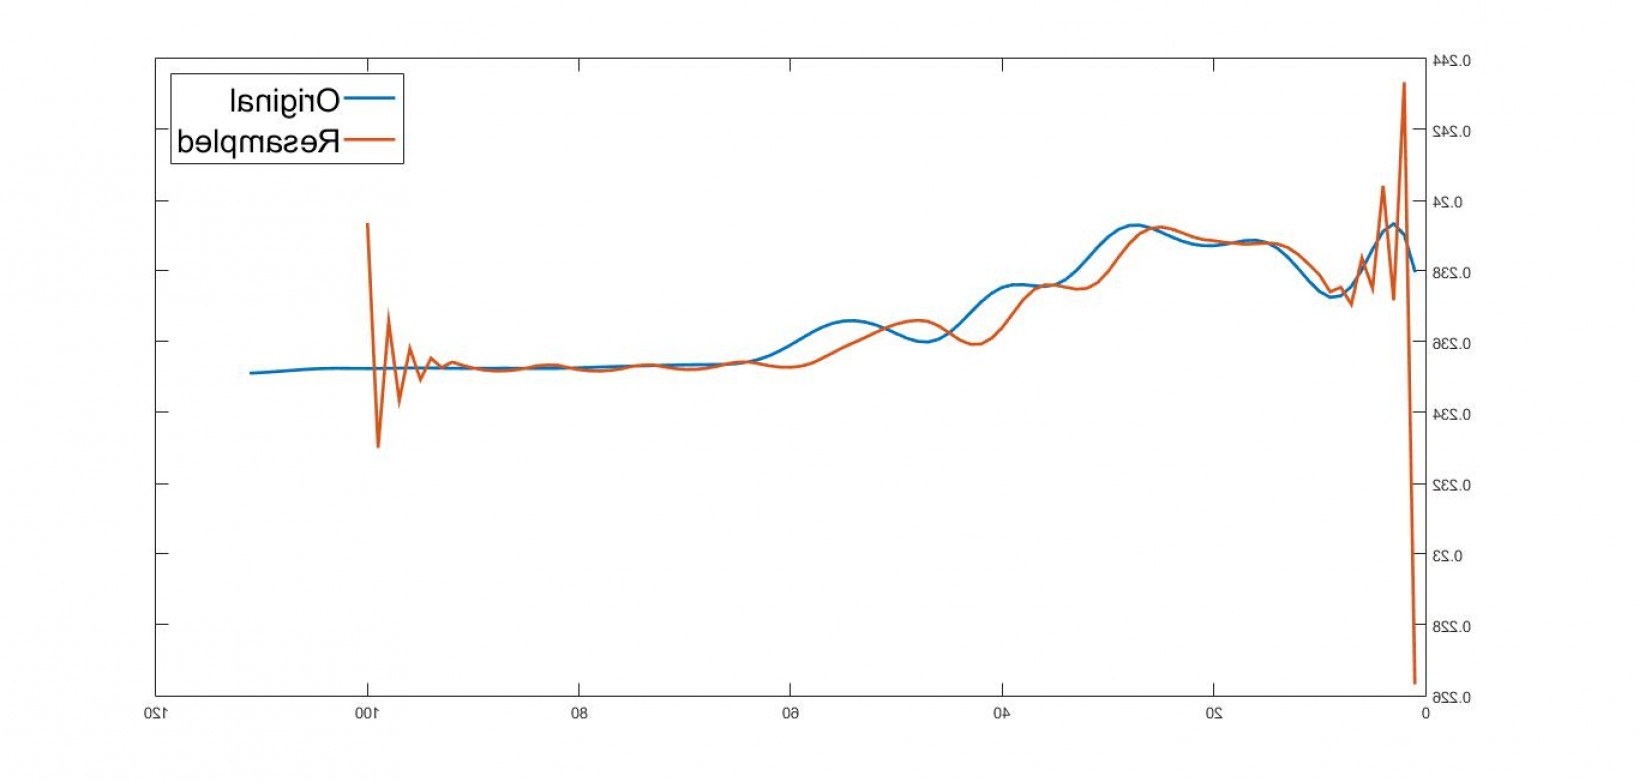 Plotting Vectors In Mat Lab: Resampling A Vector To Change Its Length